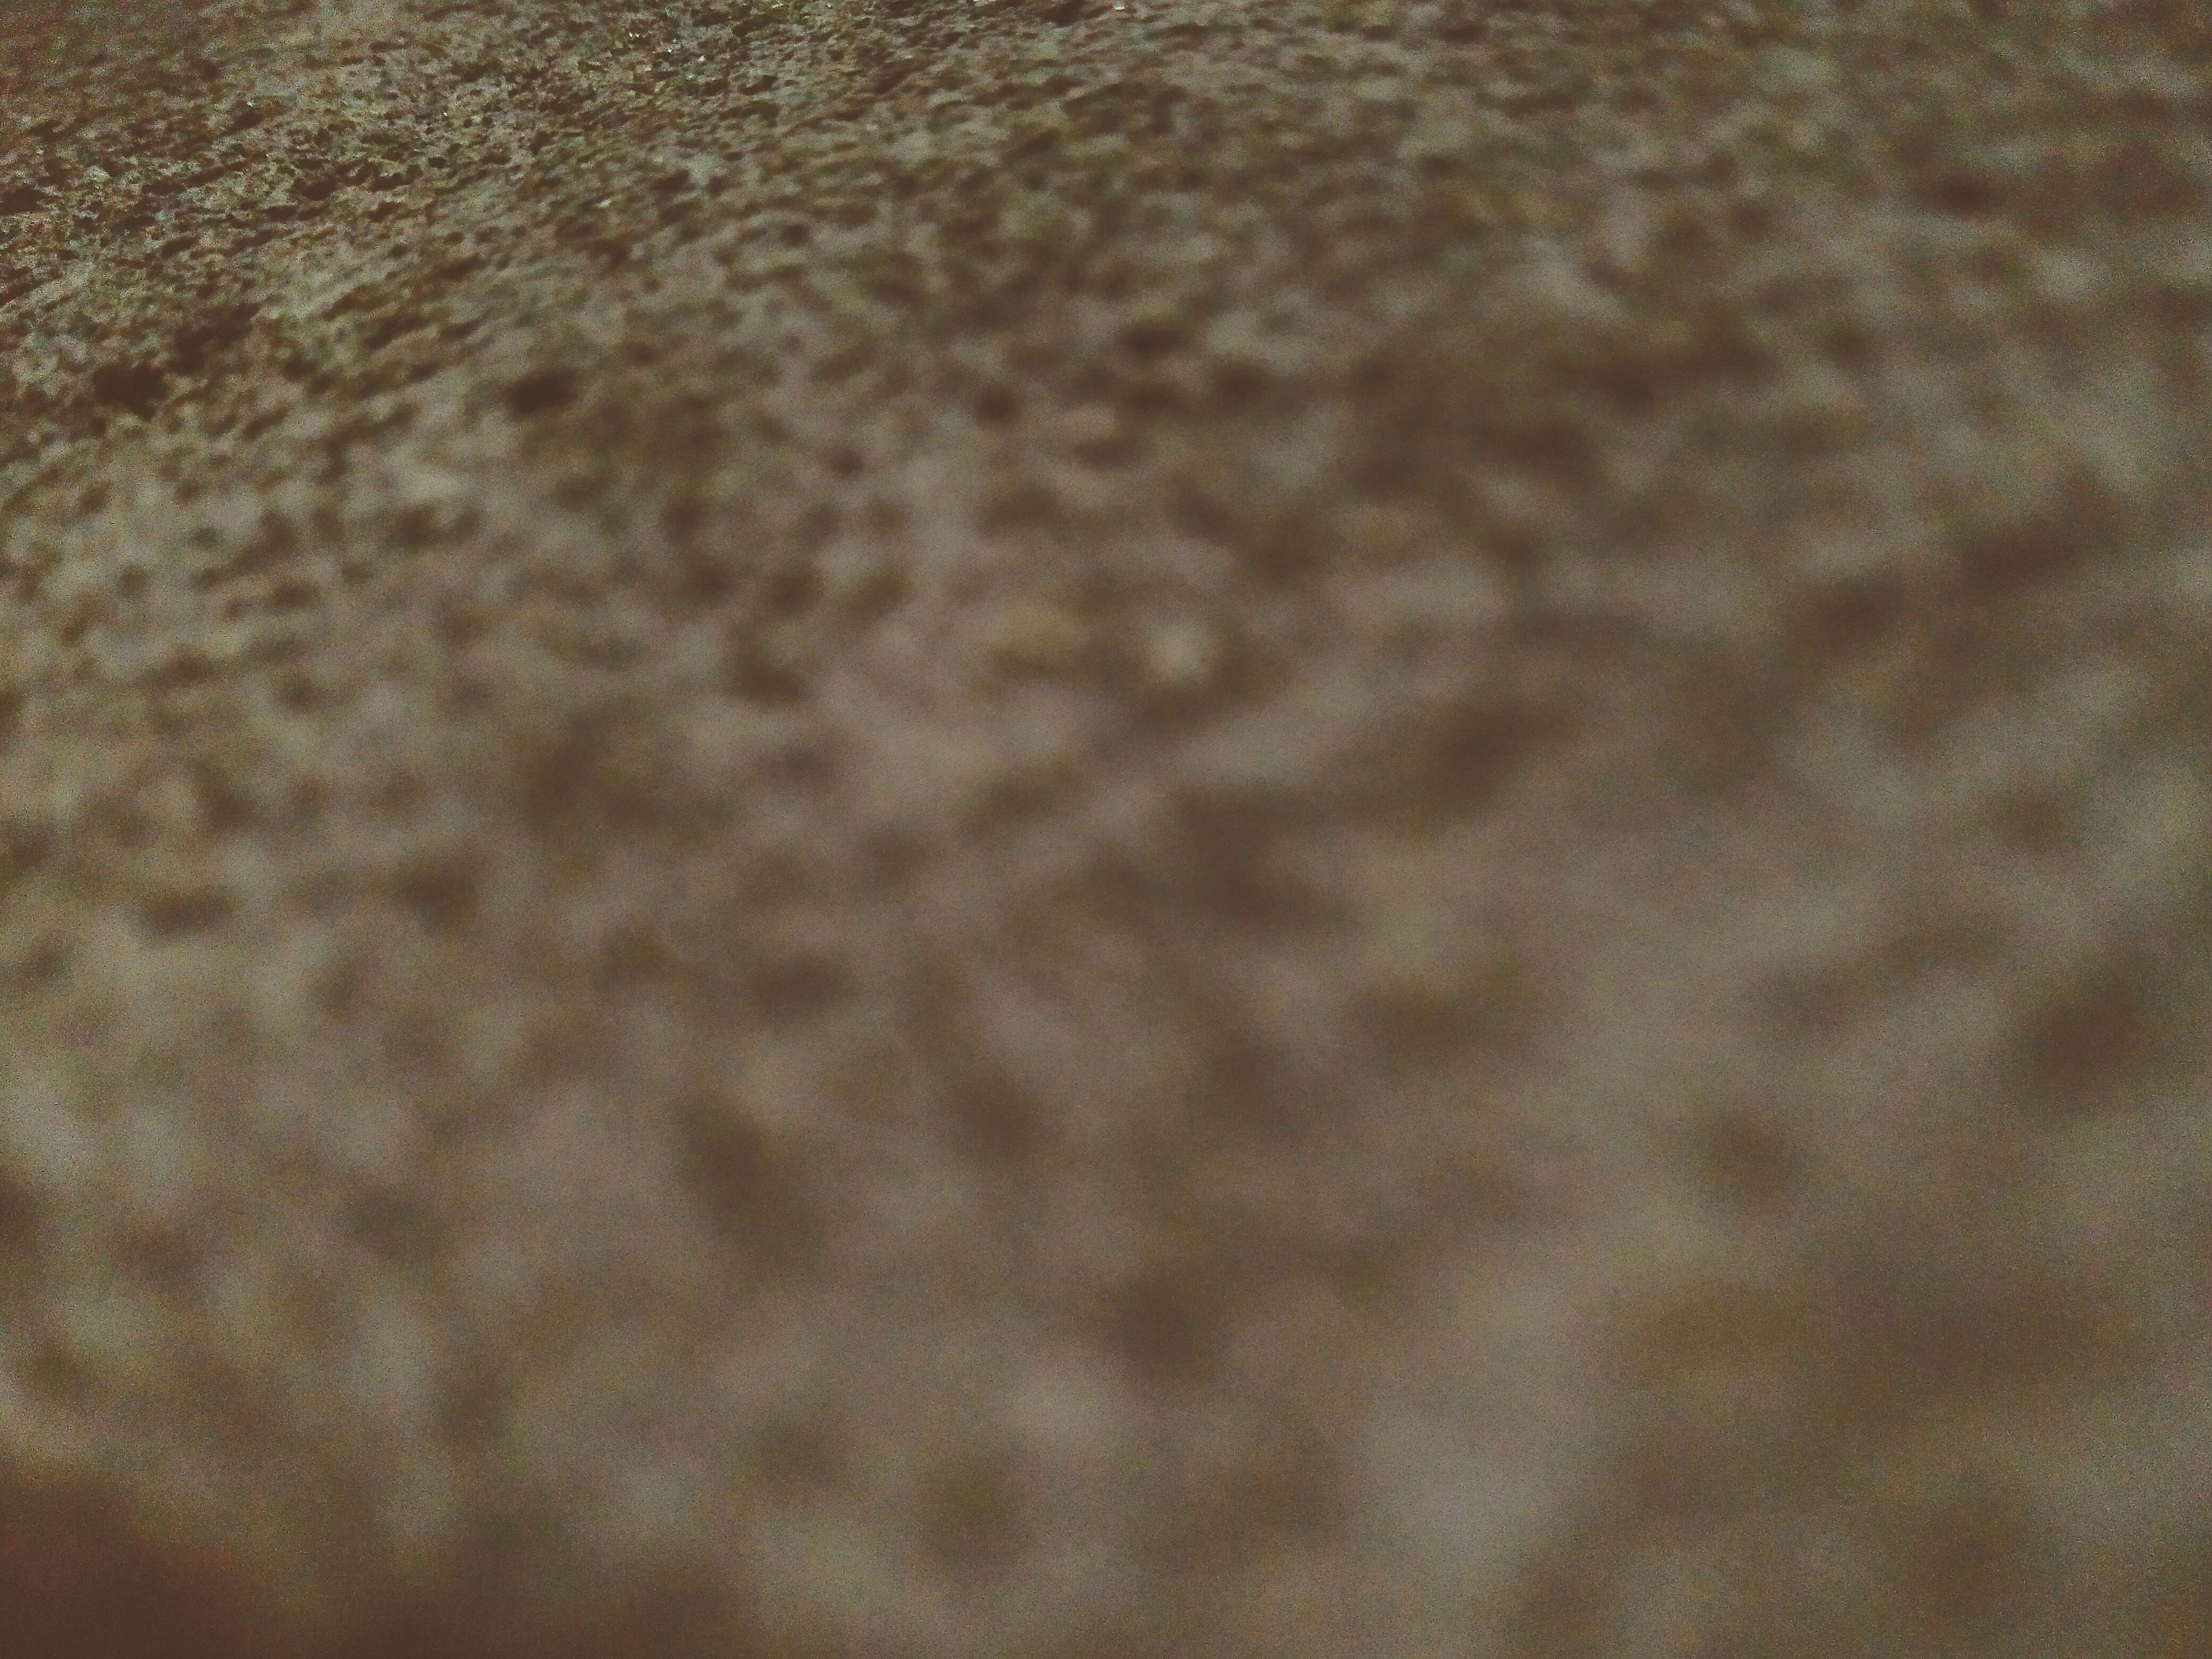 full frame, backgrounds, textured, pattern, close-up, sand, high angle view, beach, selective focus, no people, day, outdoors, detail, design, brown, sunlight, nature, still life, natural pattern